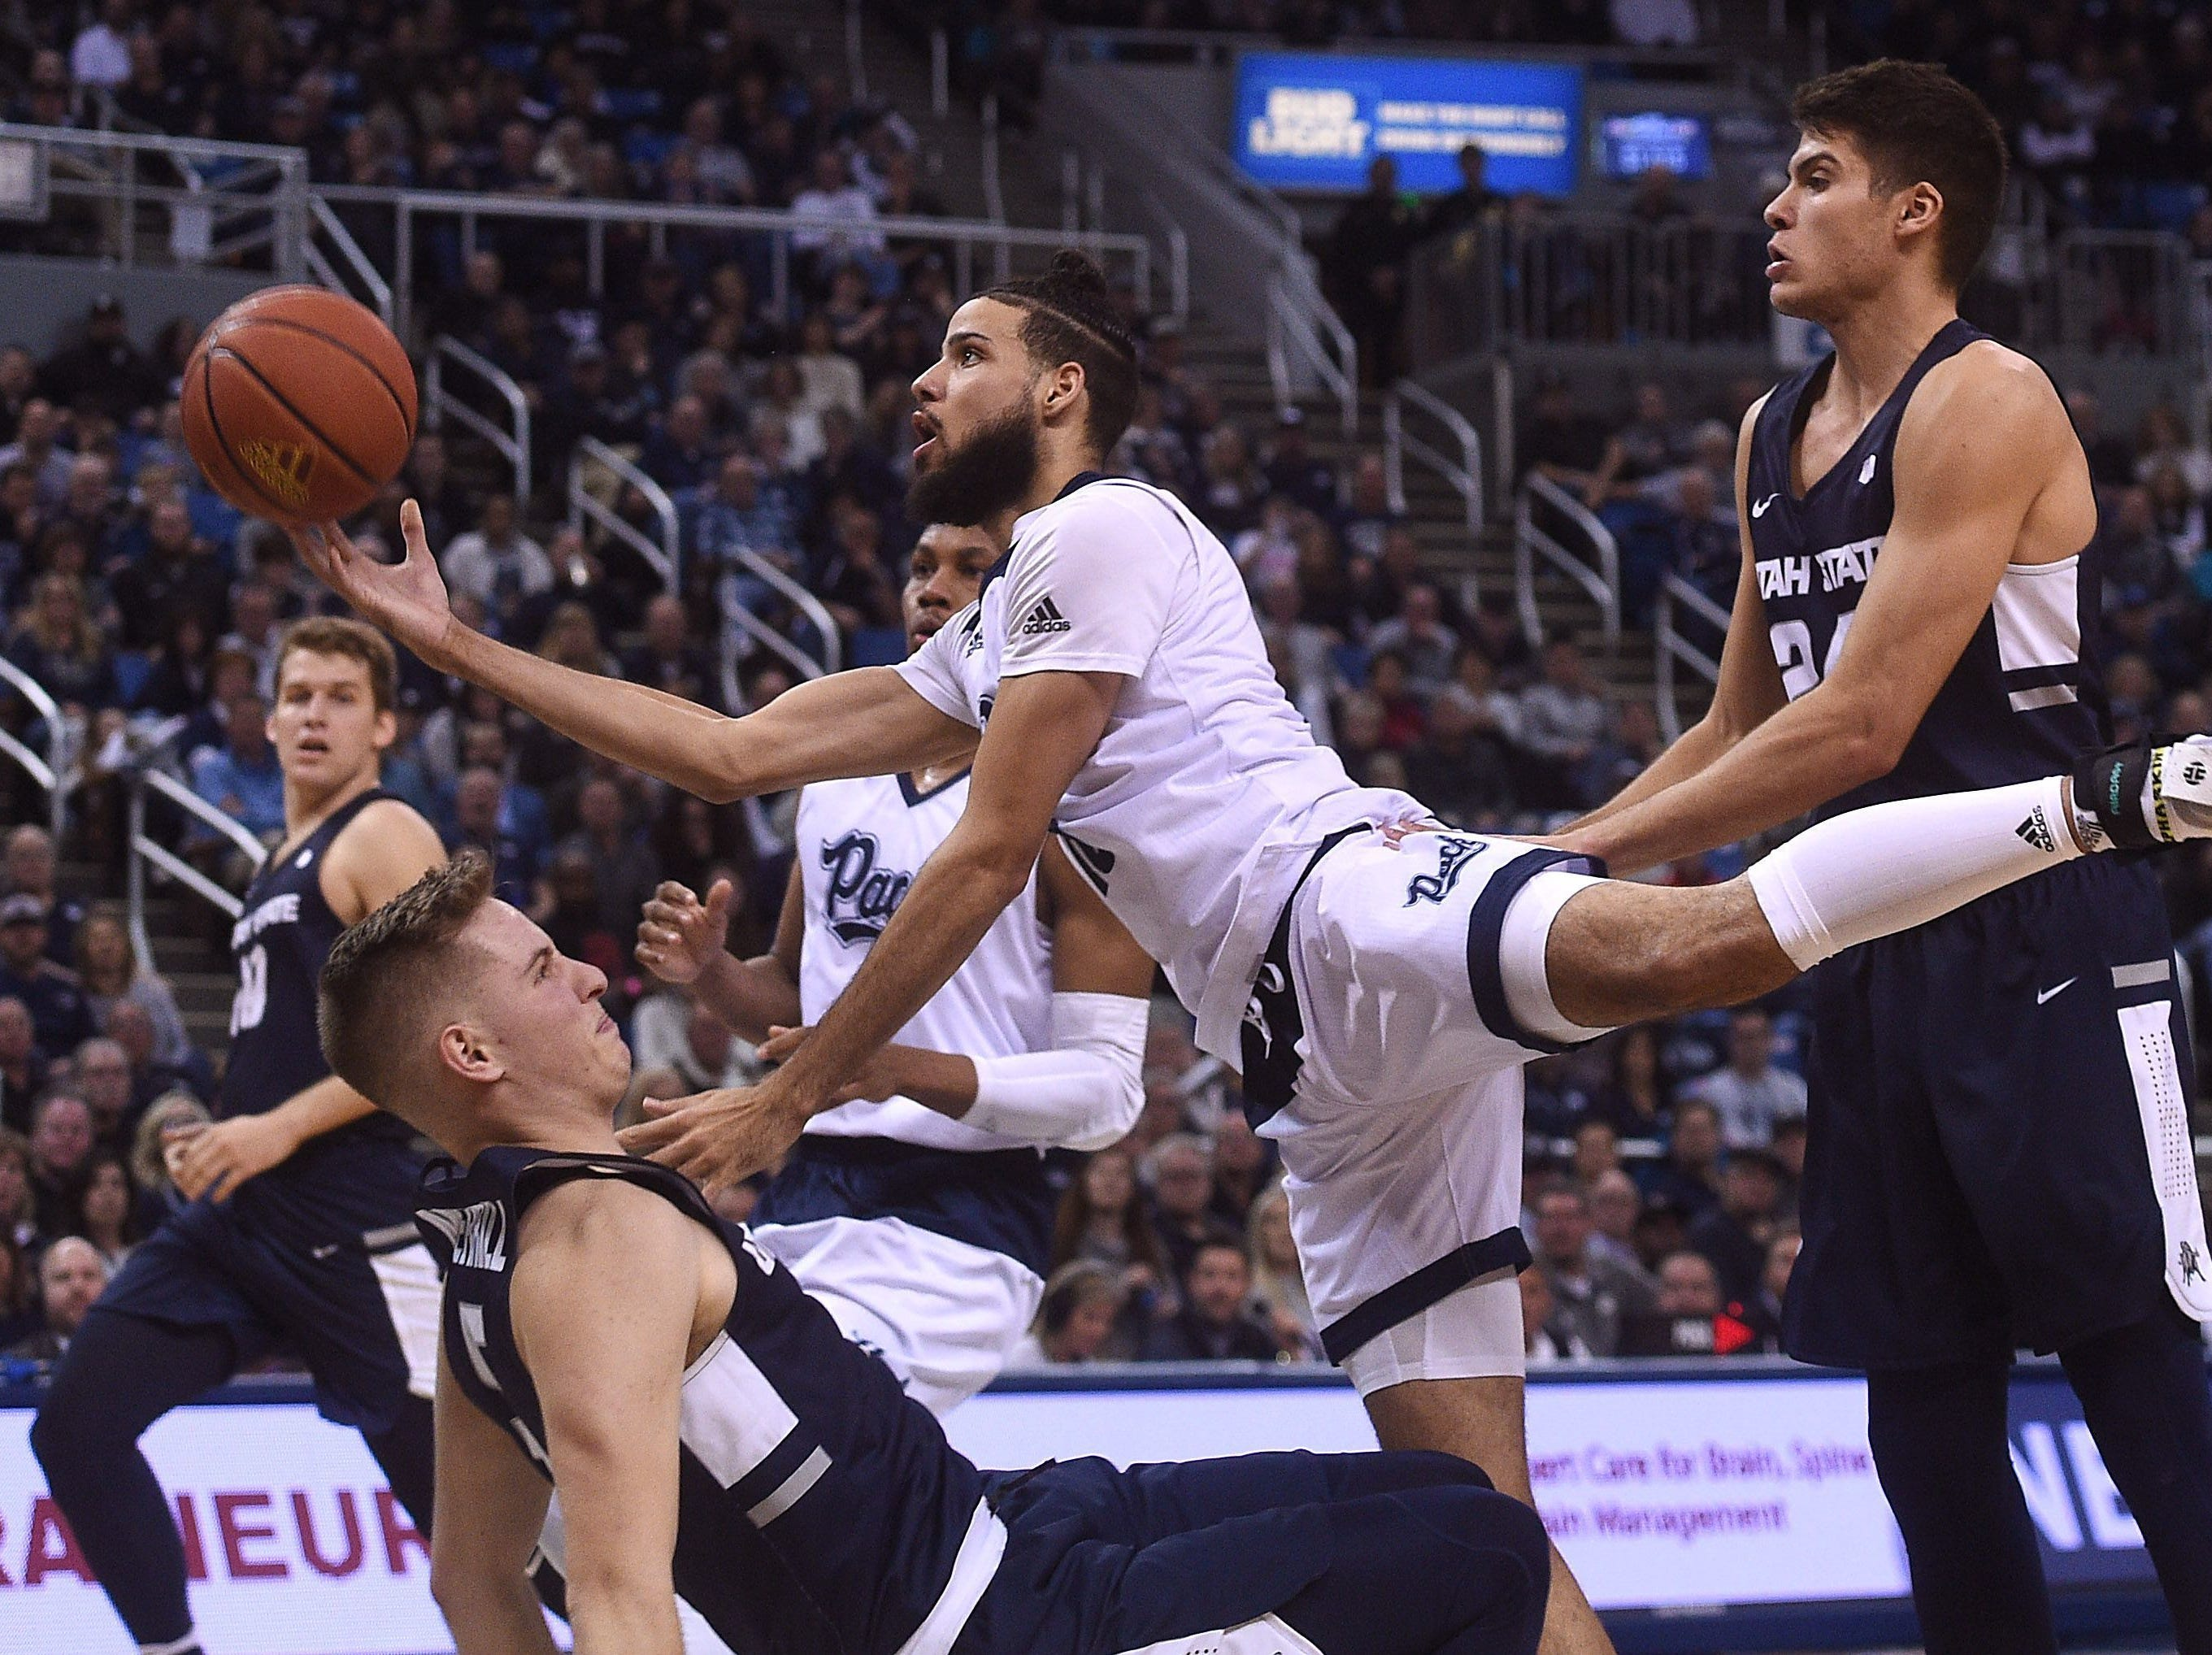 The Wolf Pack's Caleb Martin drives against Utah State.